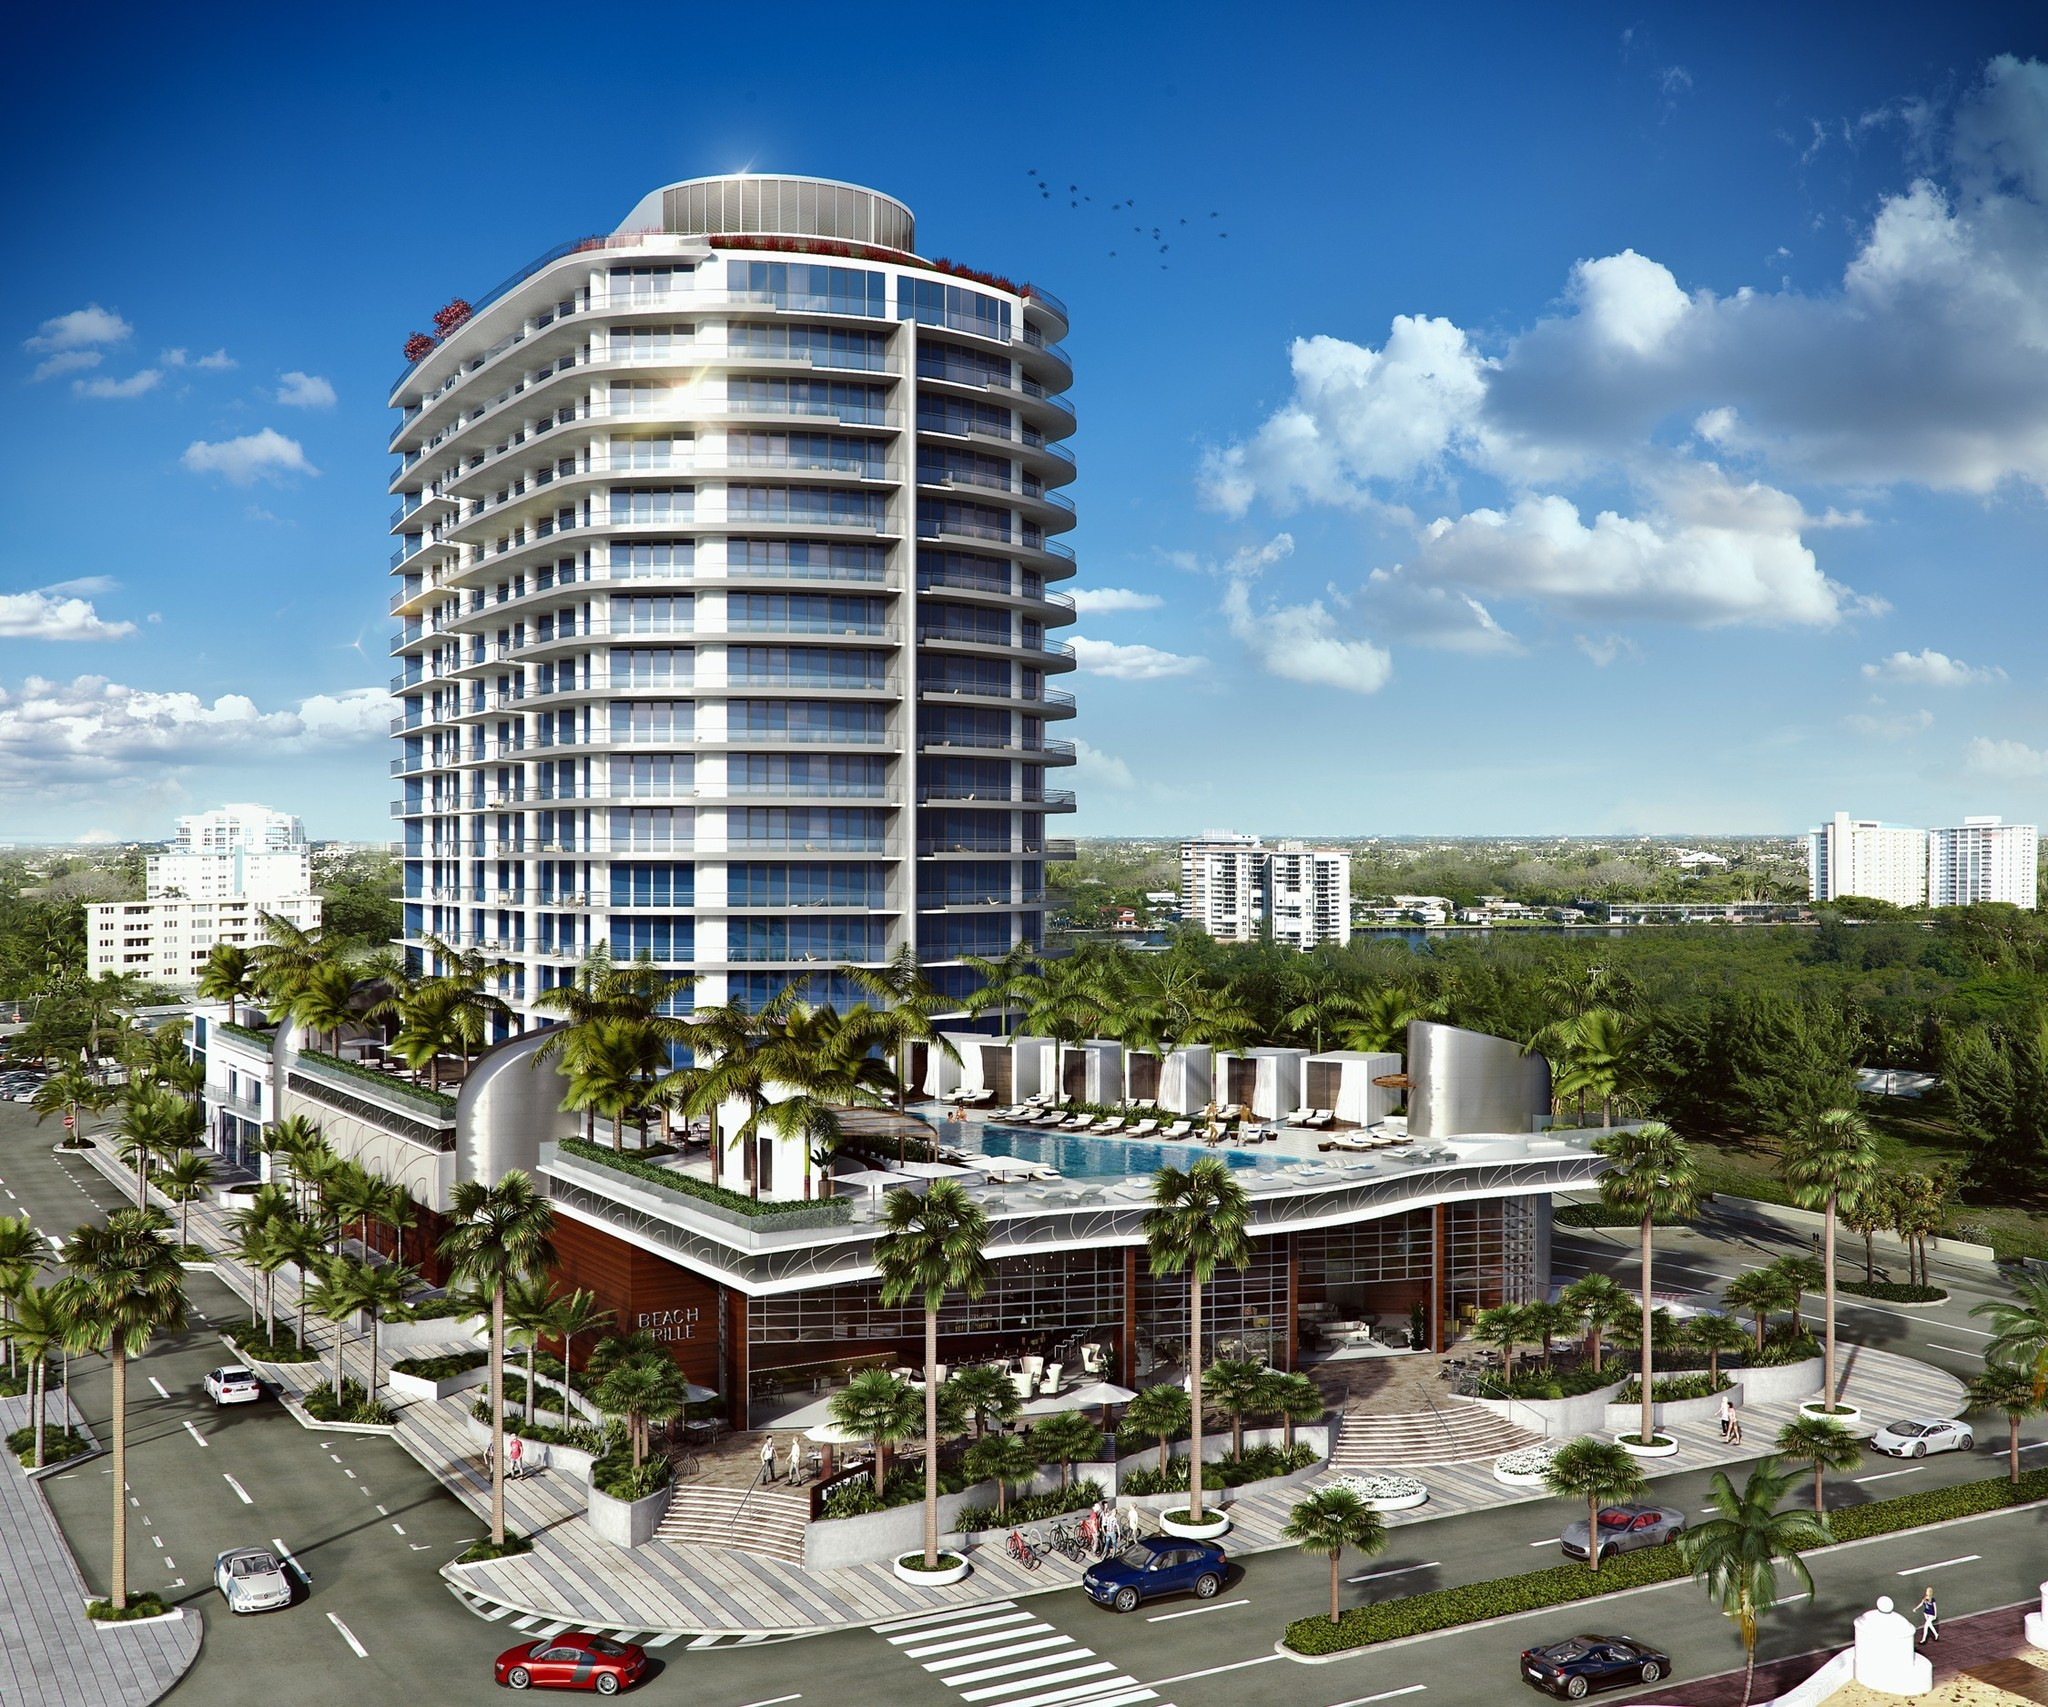 Paramount Luxury Condo Project Opening In 2016 Sun Sentinel